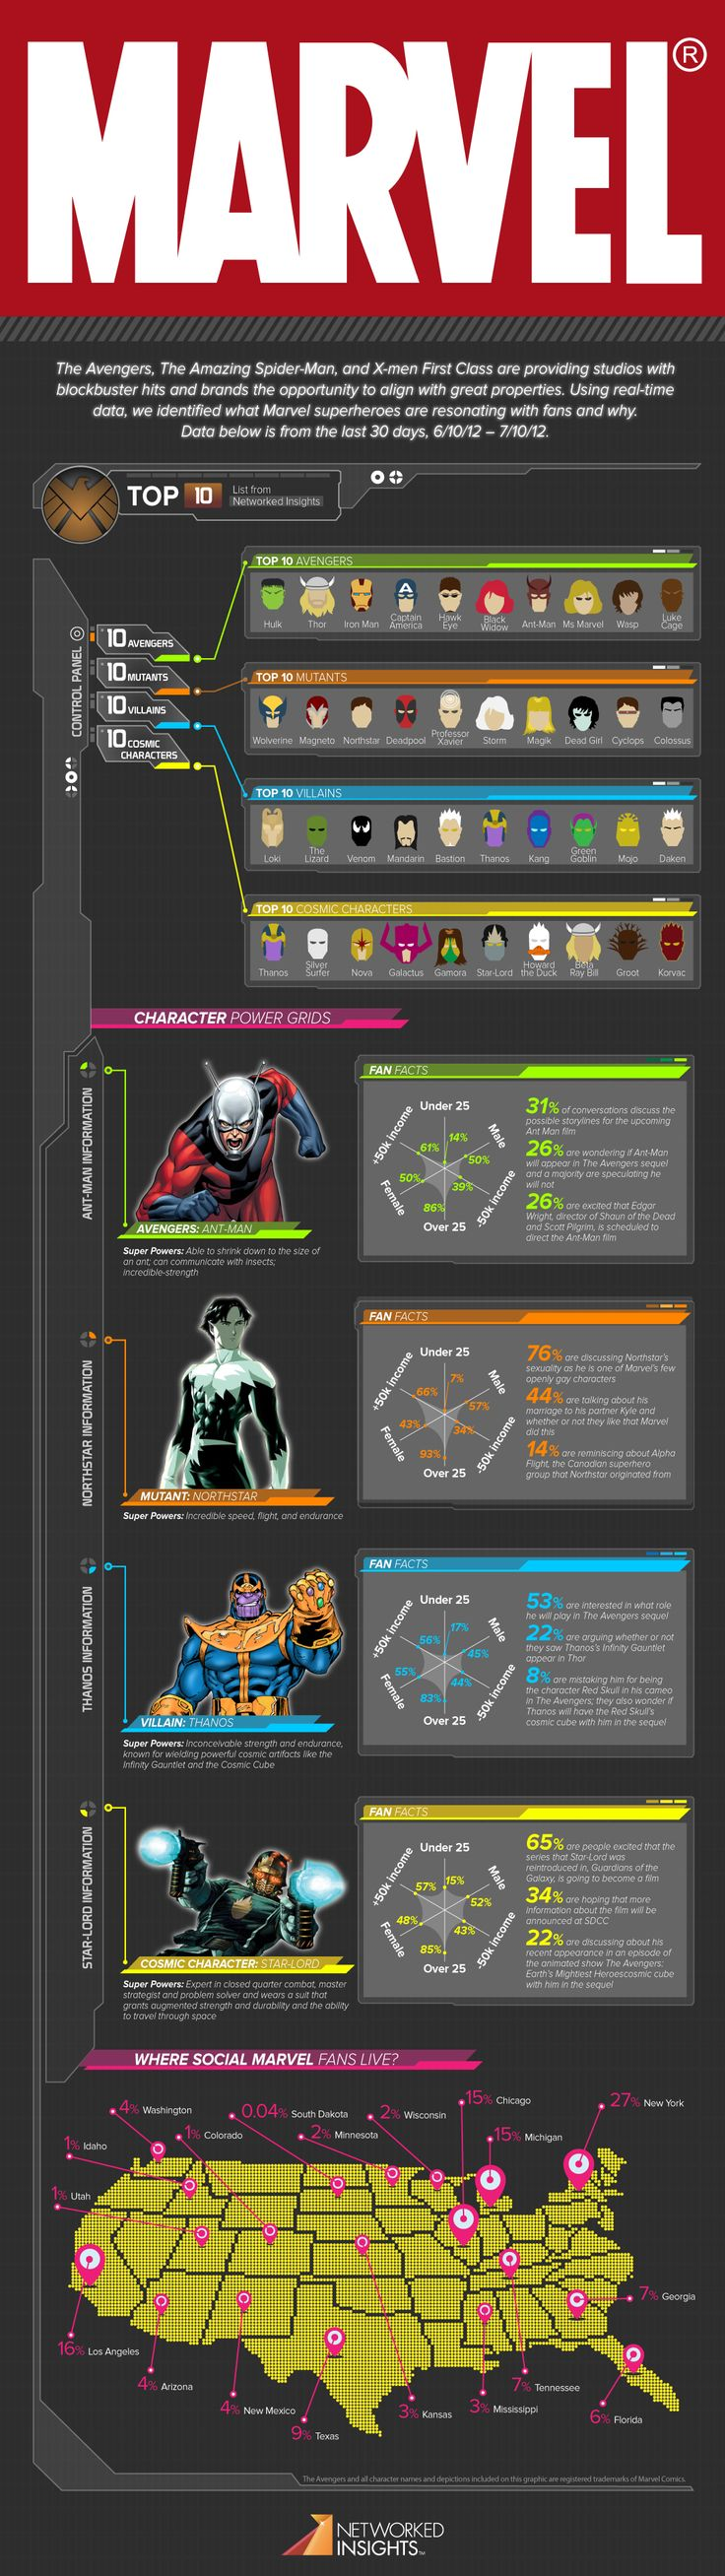 Marvel Heros and Villians